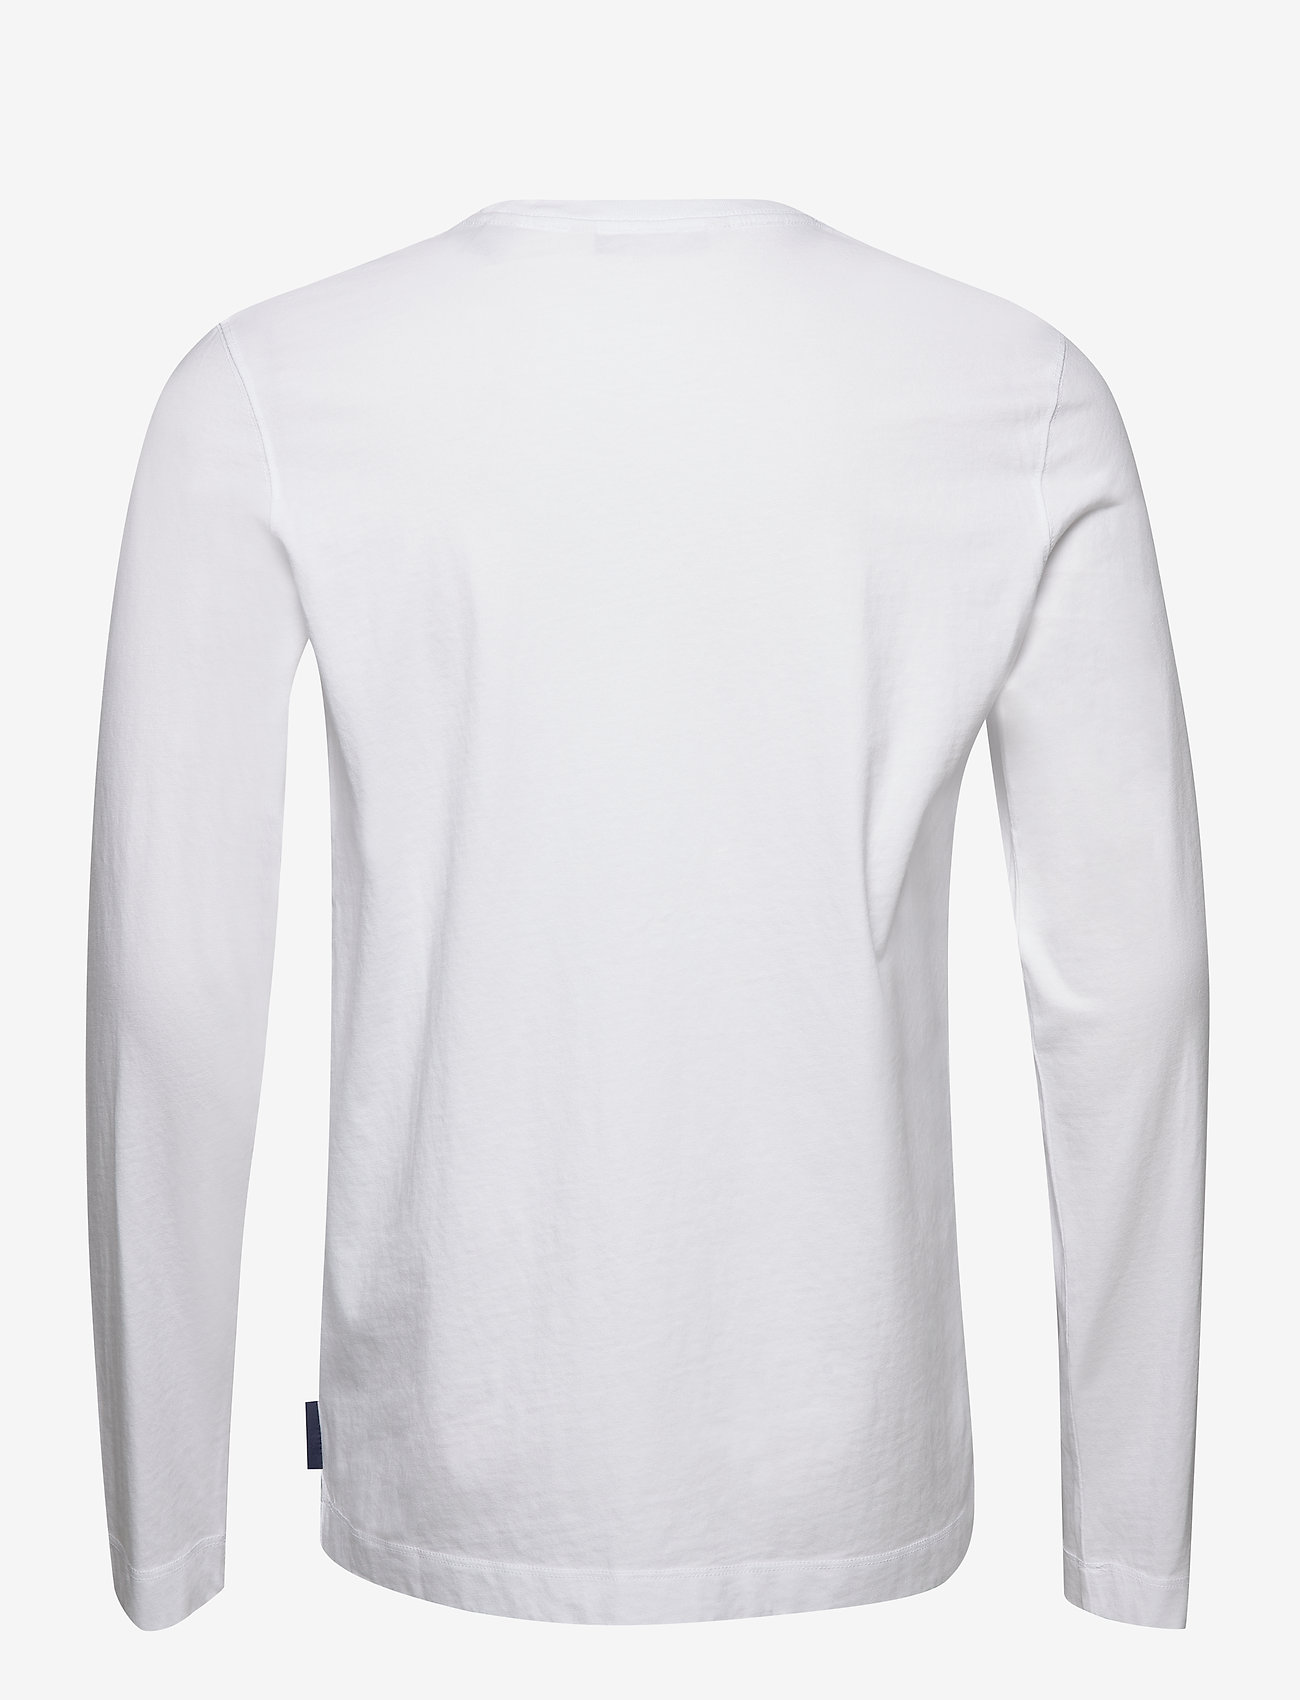 Scotch & Soda - Organic cotton longsleeve tee with chest artwork - t-shirts basiques - white - 1